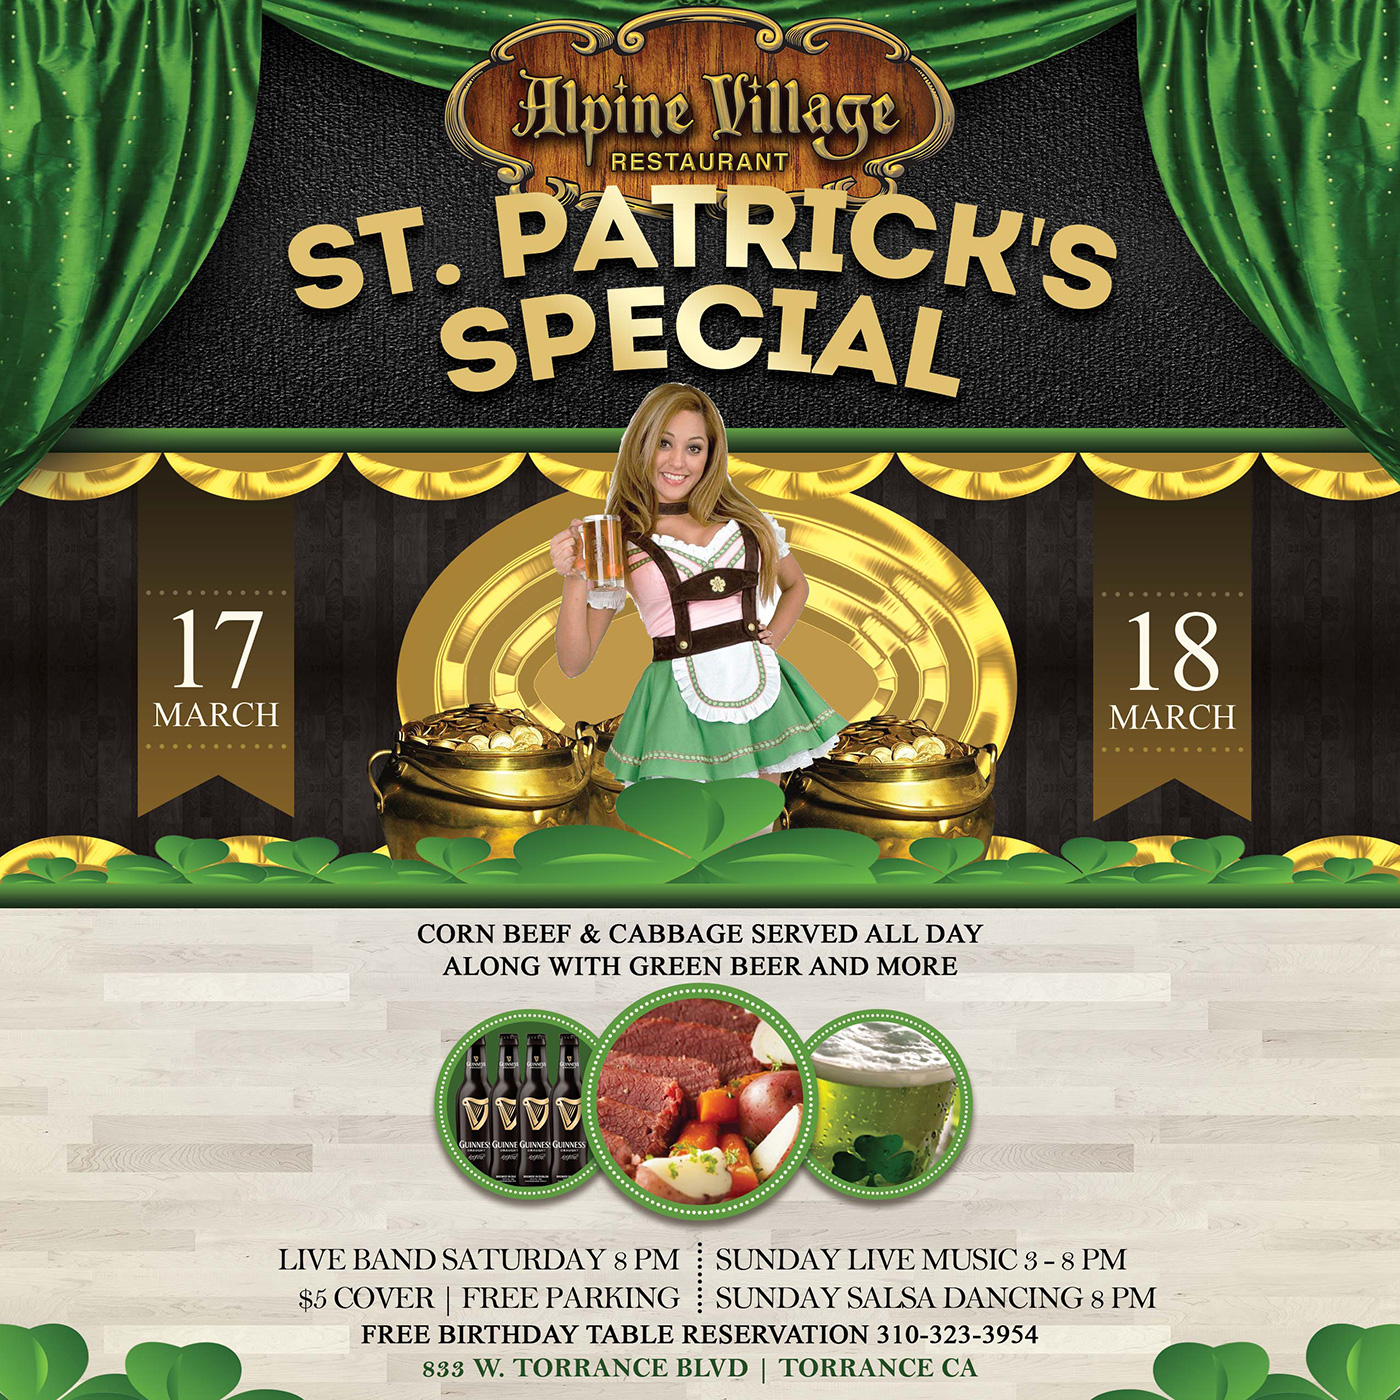 St. Patrick's Special at Alpine Village in Torrance